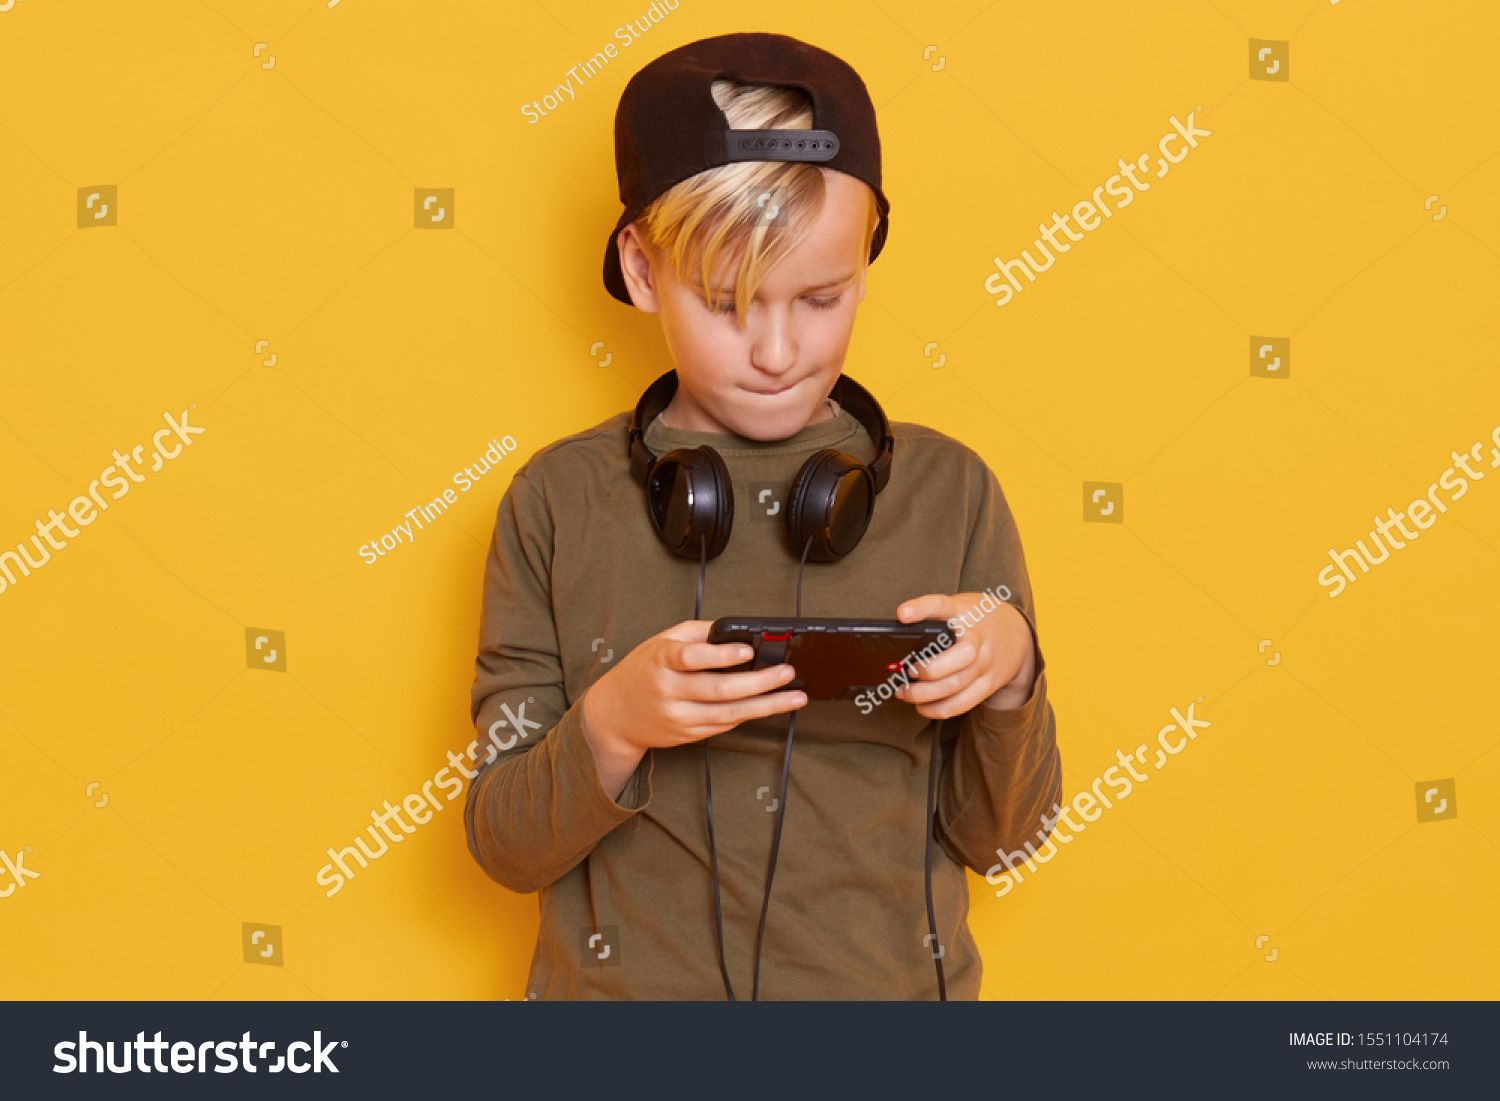 Close up portrait of little boy using mobile phone, child playing on smartphone and biting his lower lip, posing isolated over yellow studio background. Technology, mobile apps, children concept. #Ad , #Aff, #playing#child#biting#smartphone #lipsbackground